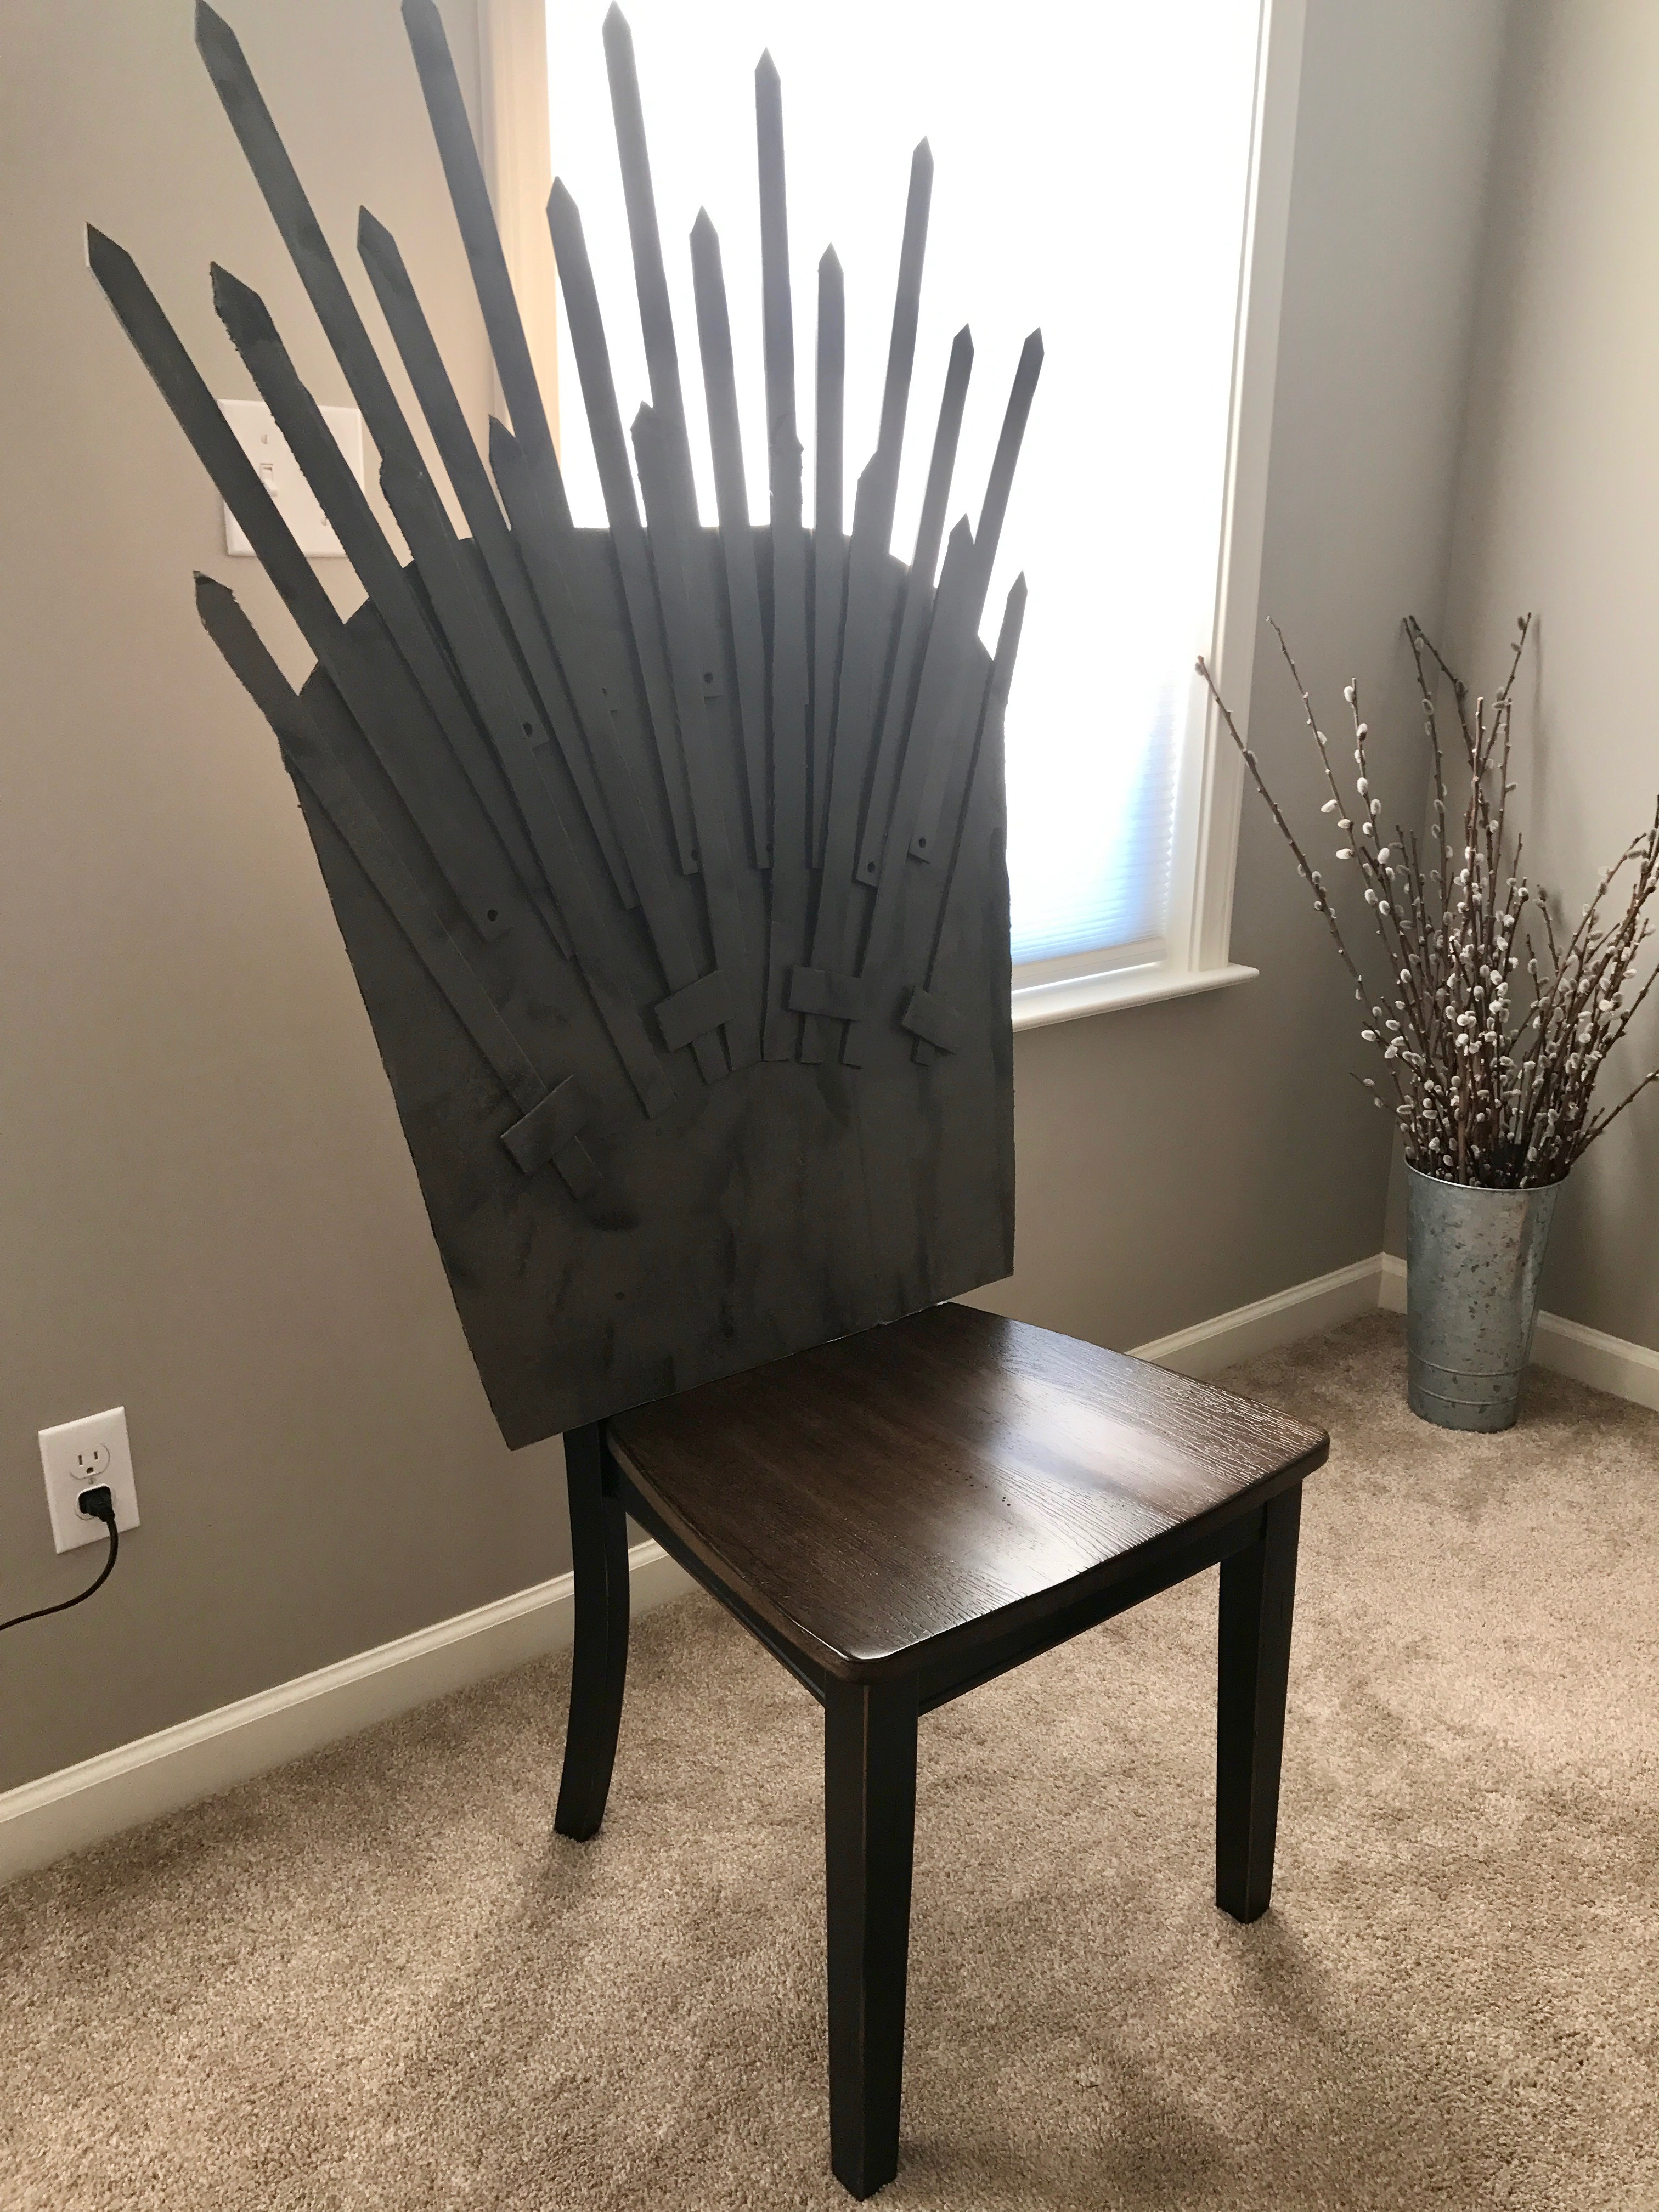 Iron Throne Office Chair Throneofswords2 Zoom In